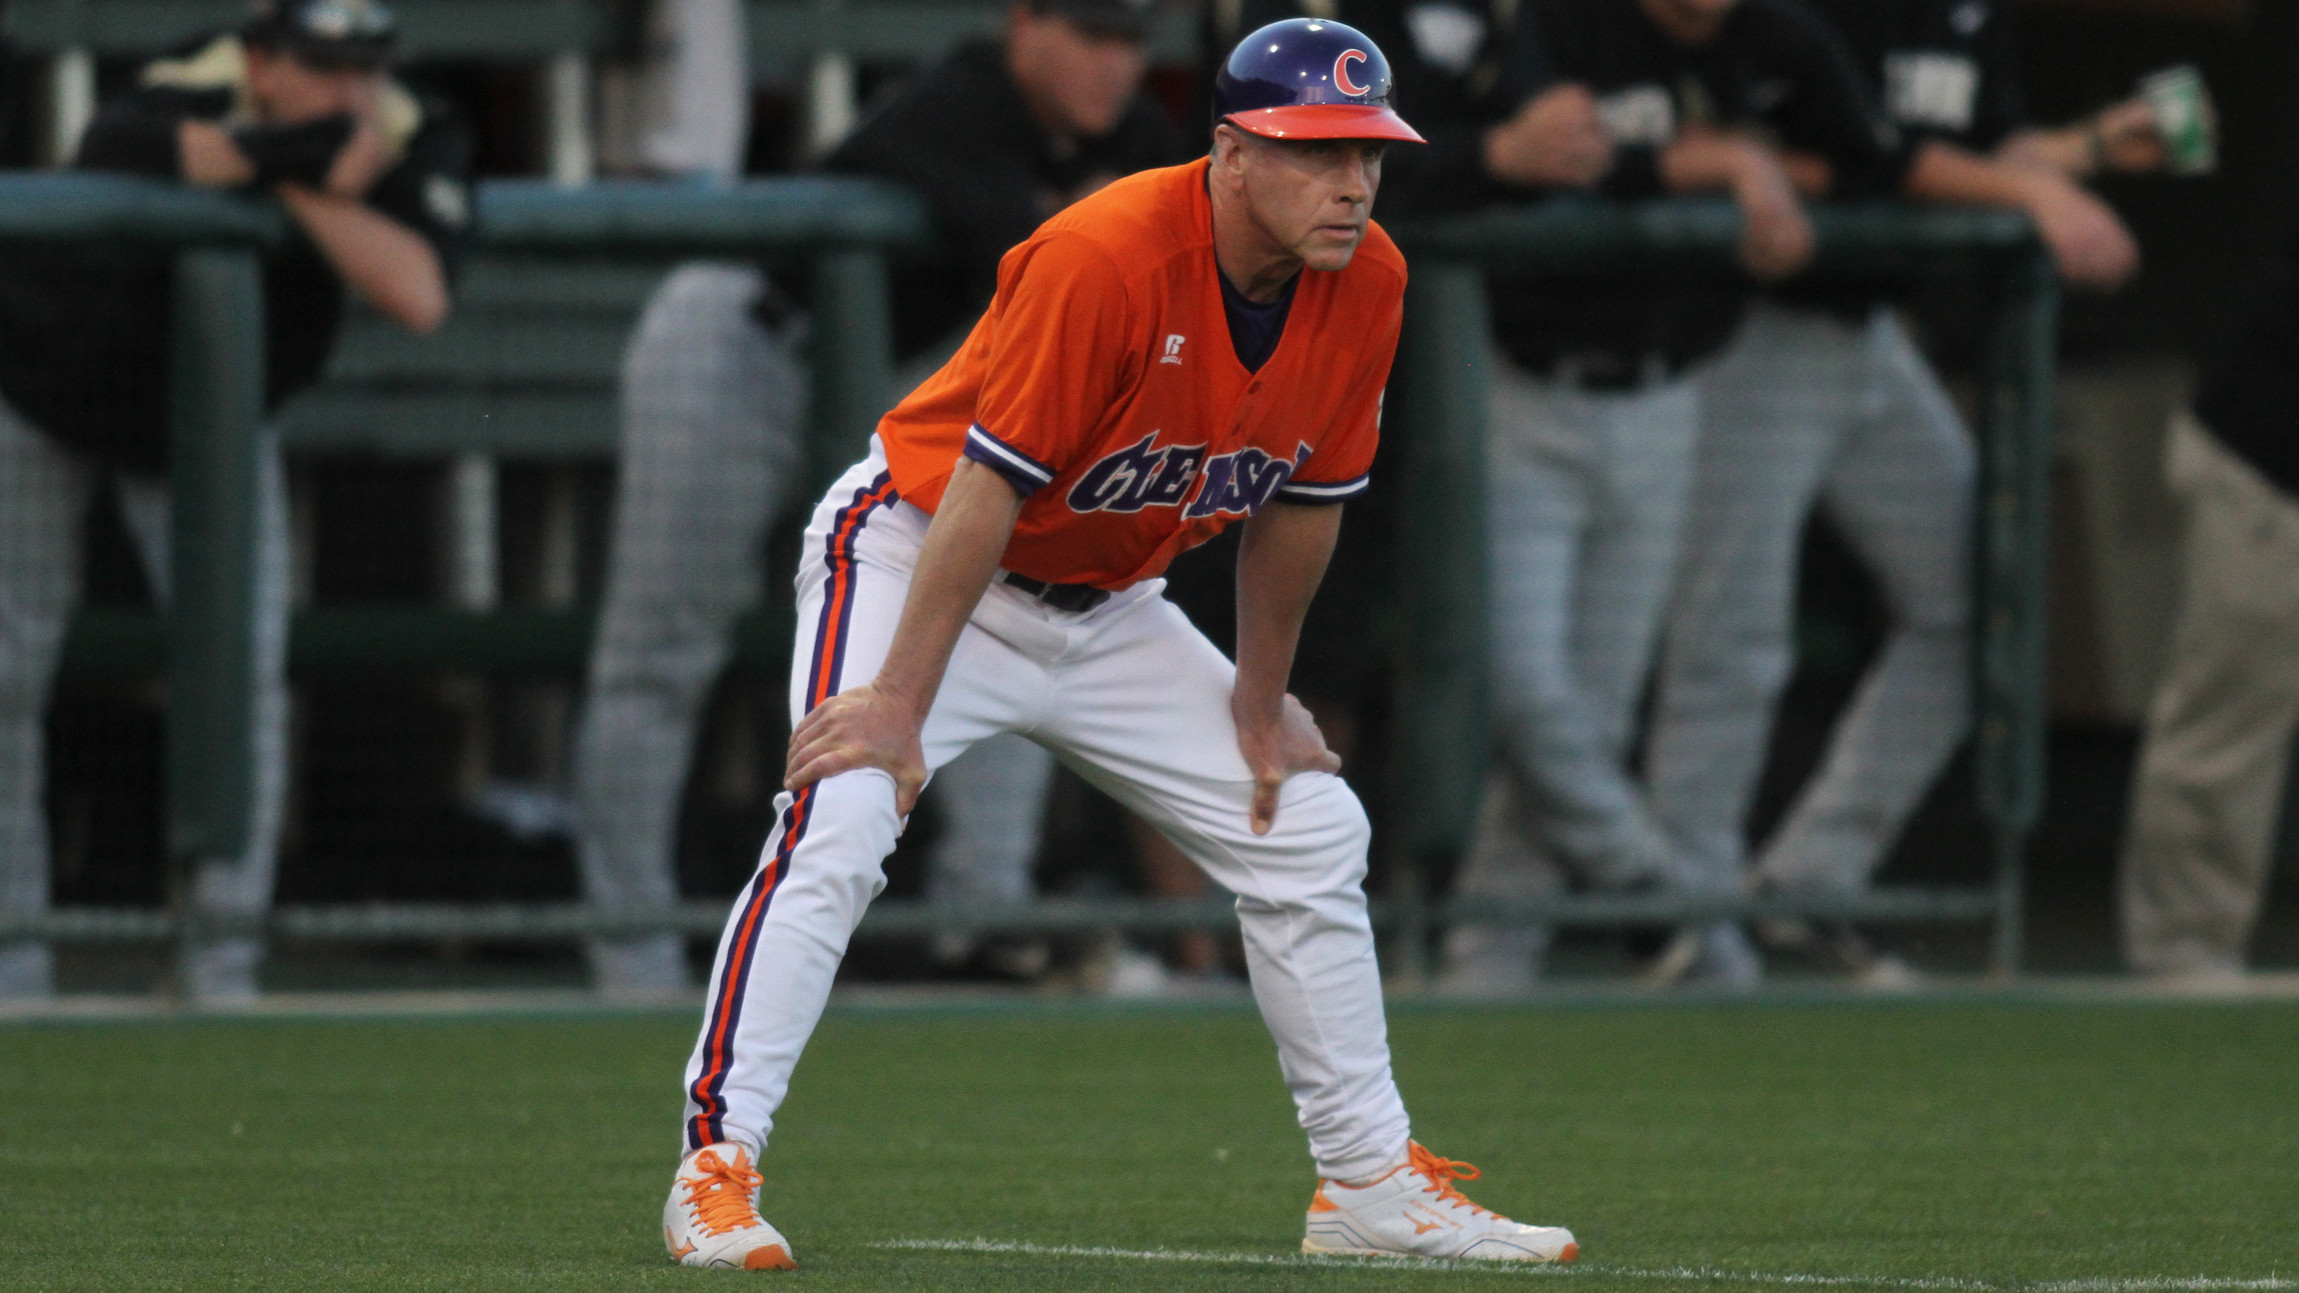 Clemson Adds Nine Baseball Players to 2014 Team